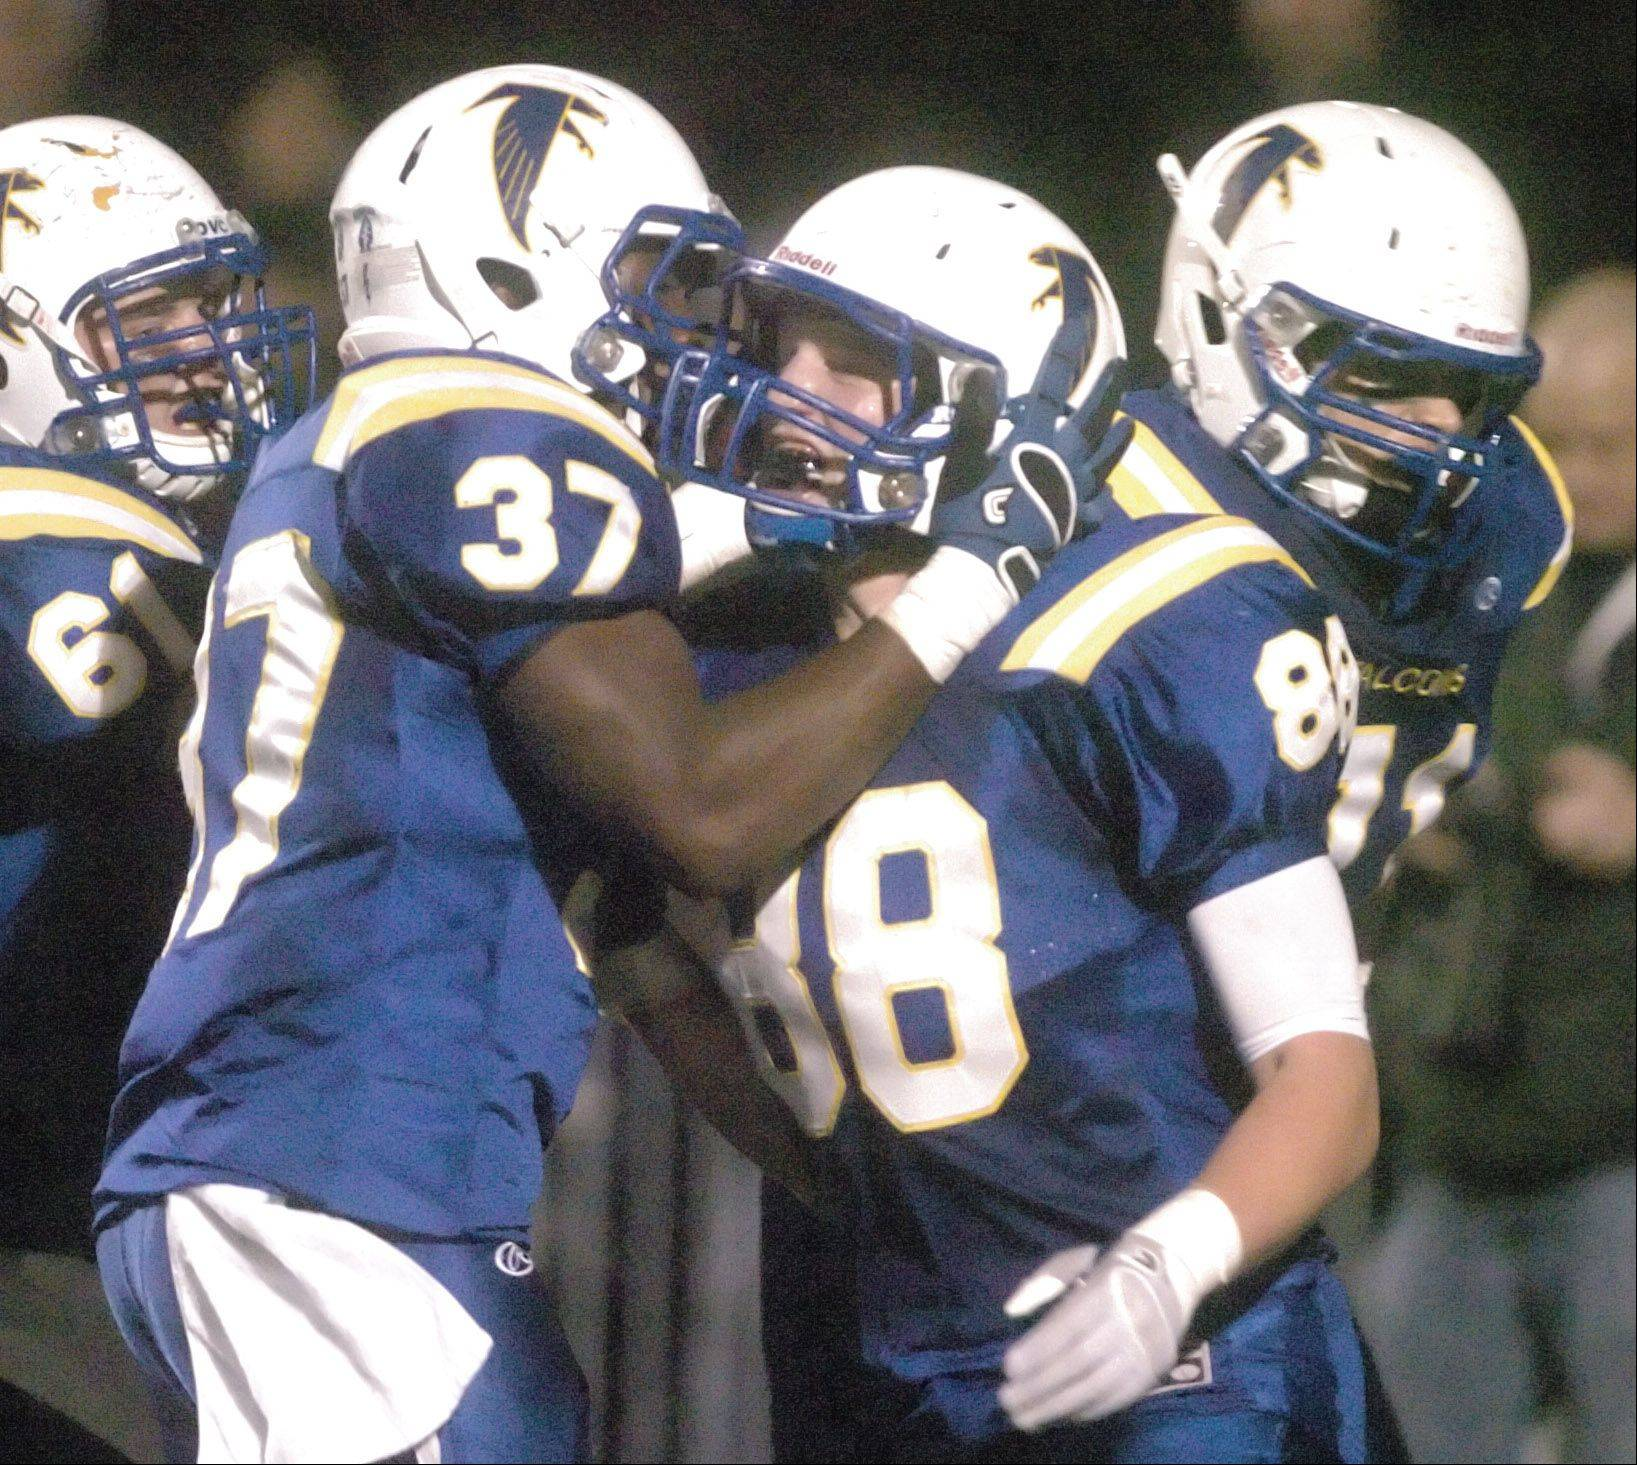 Patrick Sharp,left, and Tom Colletti of Wheaton North celebrate after a touchdown.